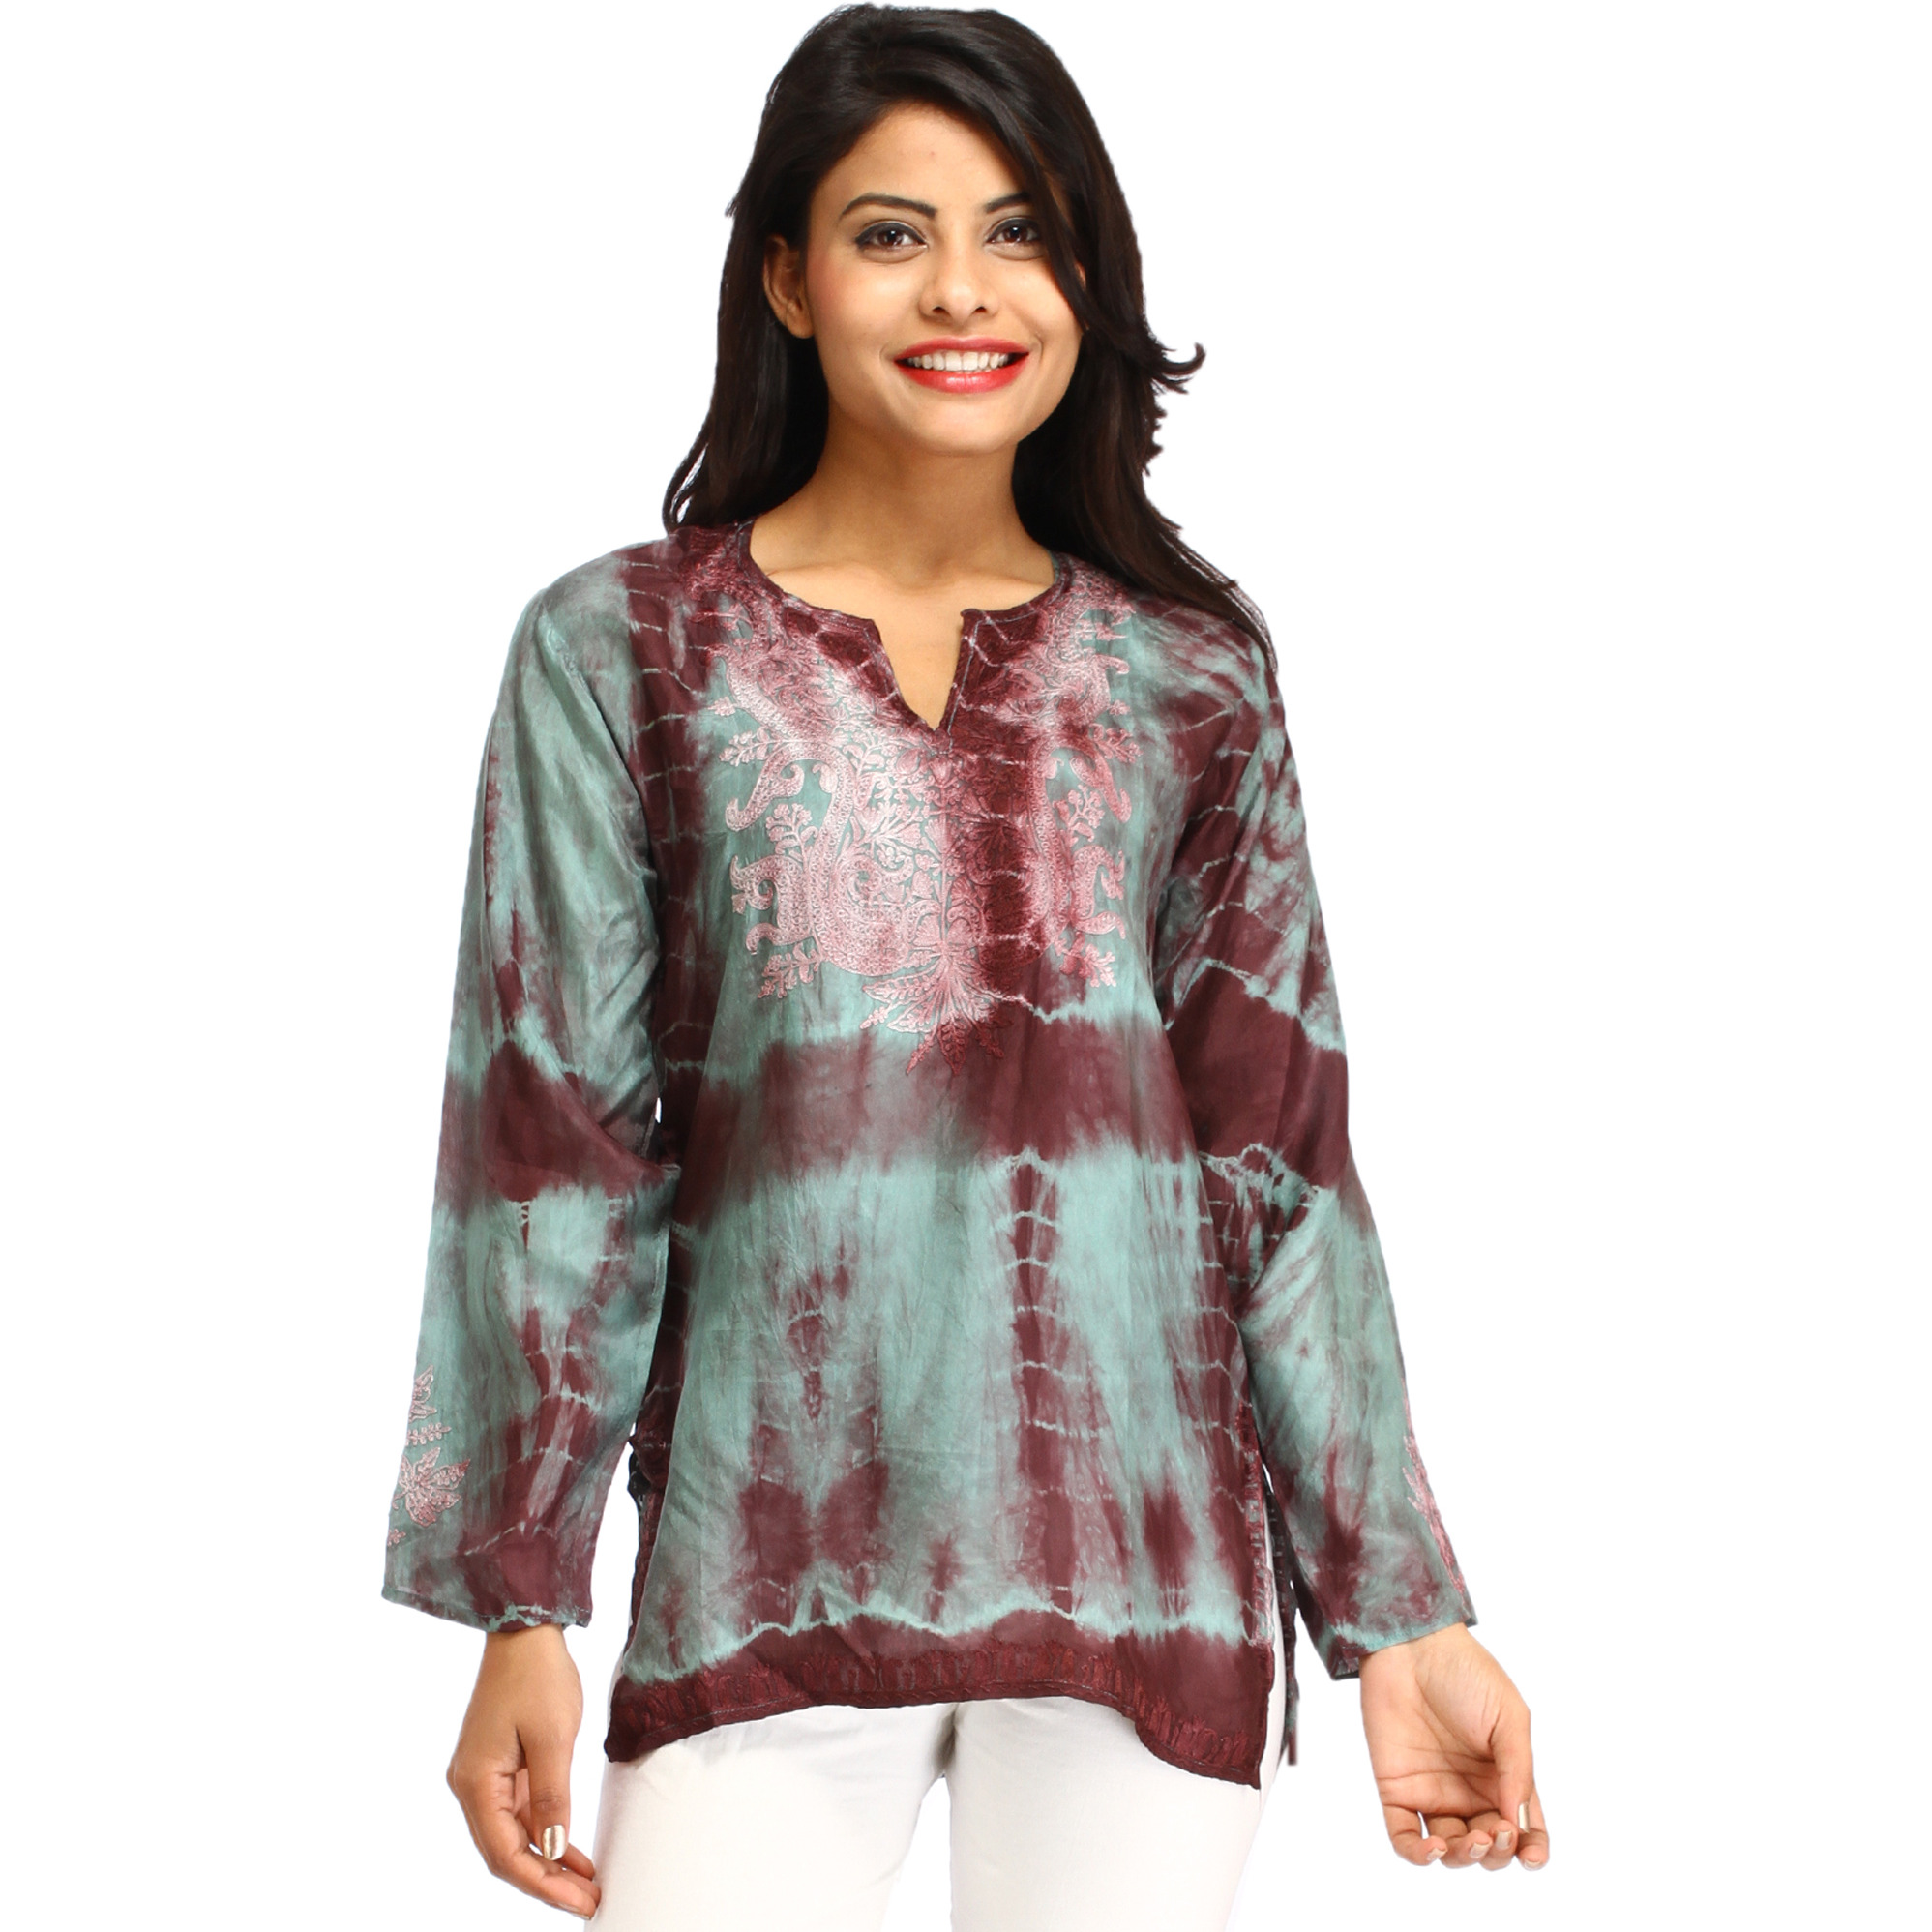 Surf-Blue Batik Dyed Kurti from Kashmir with Ari-Embroidery